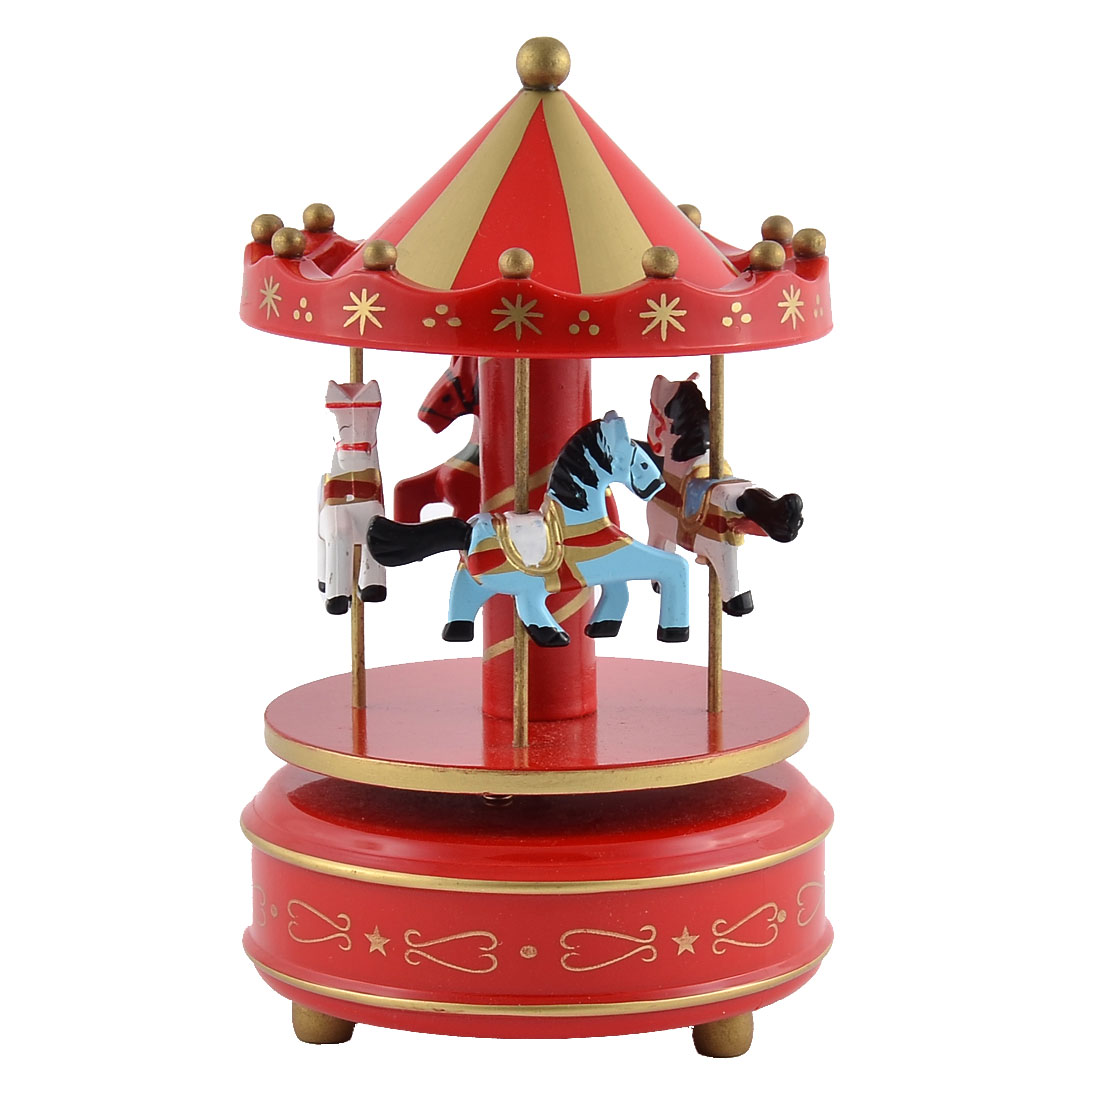 Plastic 4 Horses Merry-Go-Round Carousel Music Box Christmas Gift Red Gold Tone